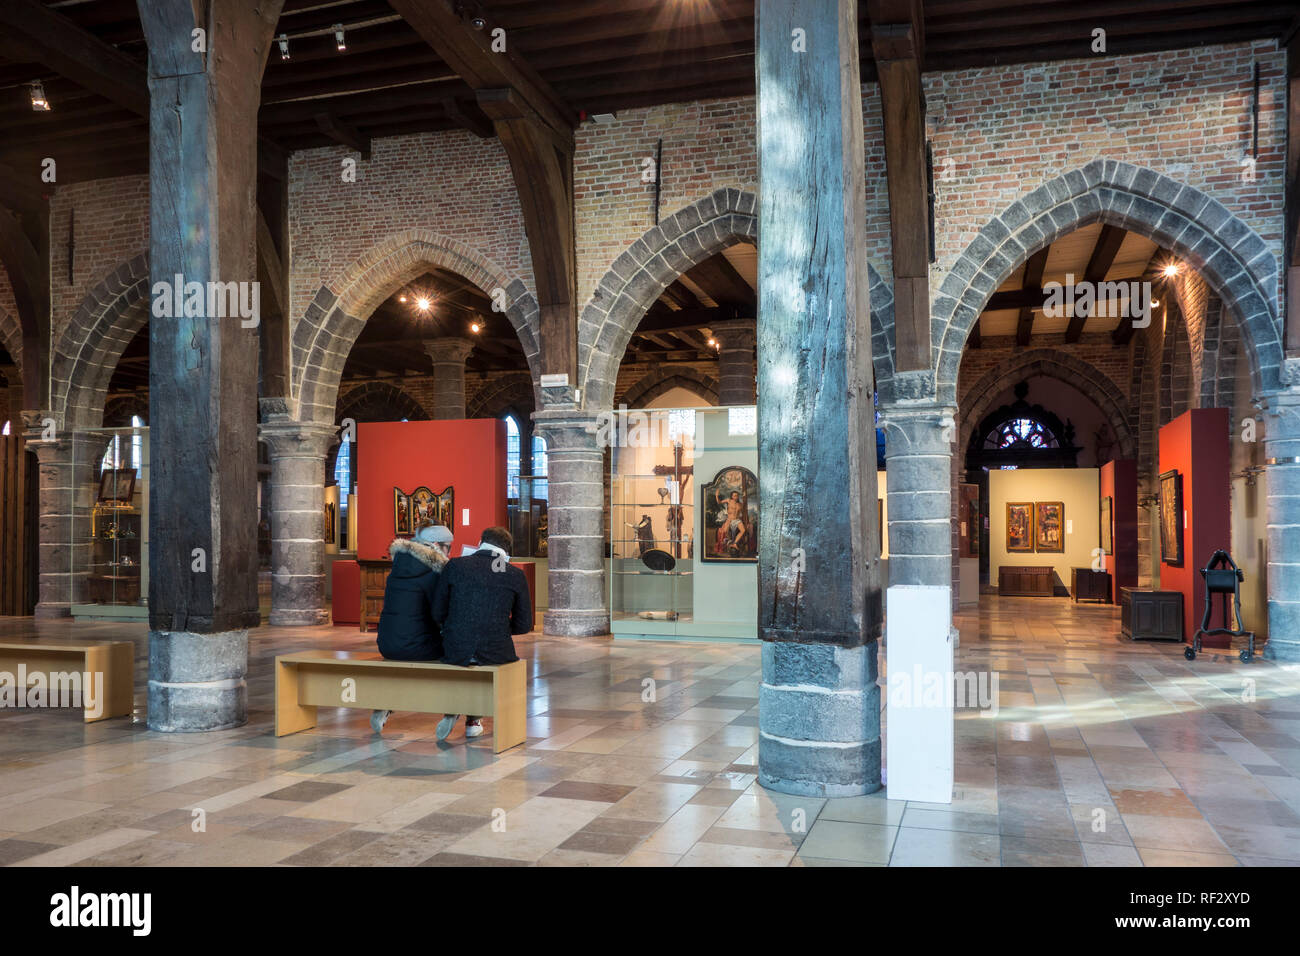 Tourists visiting museum in the old sick-bay at the medieval Sint-Janshospitaal / St John's Hospital in the city Bruges, West Flanders, Belgium - Stock Image